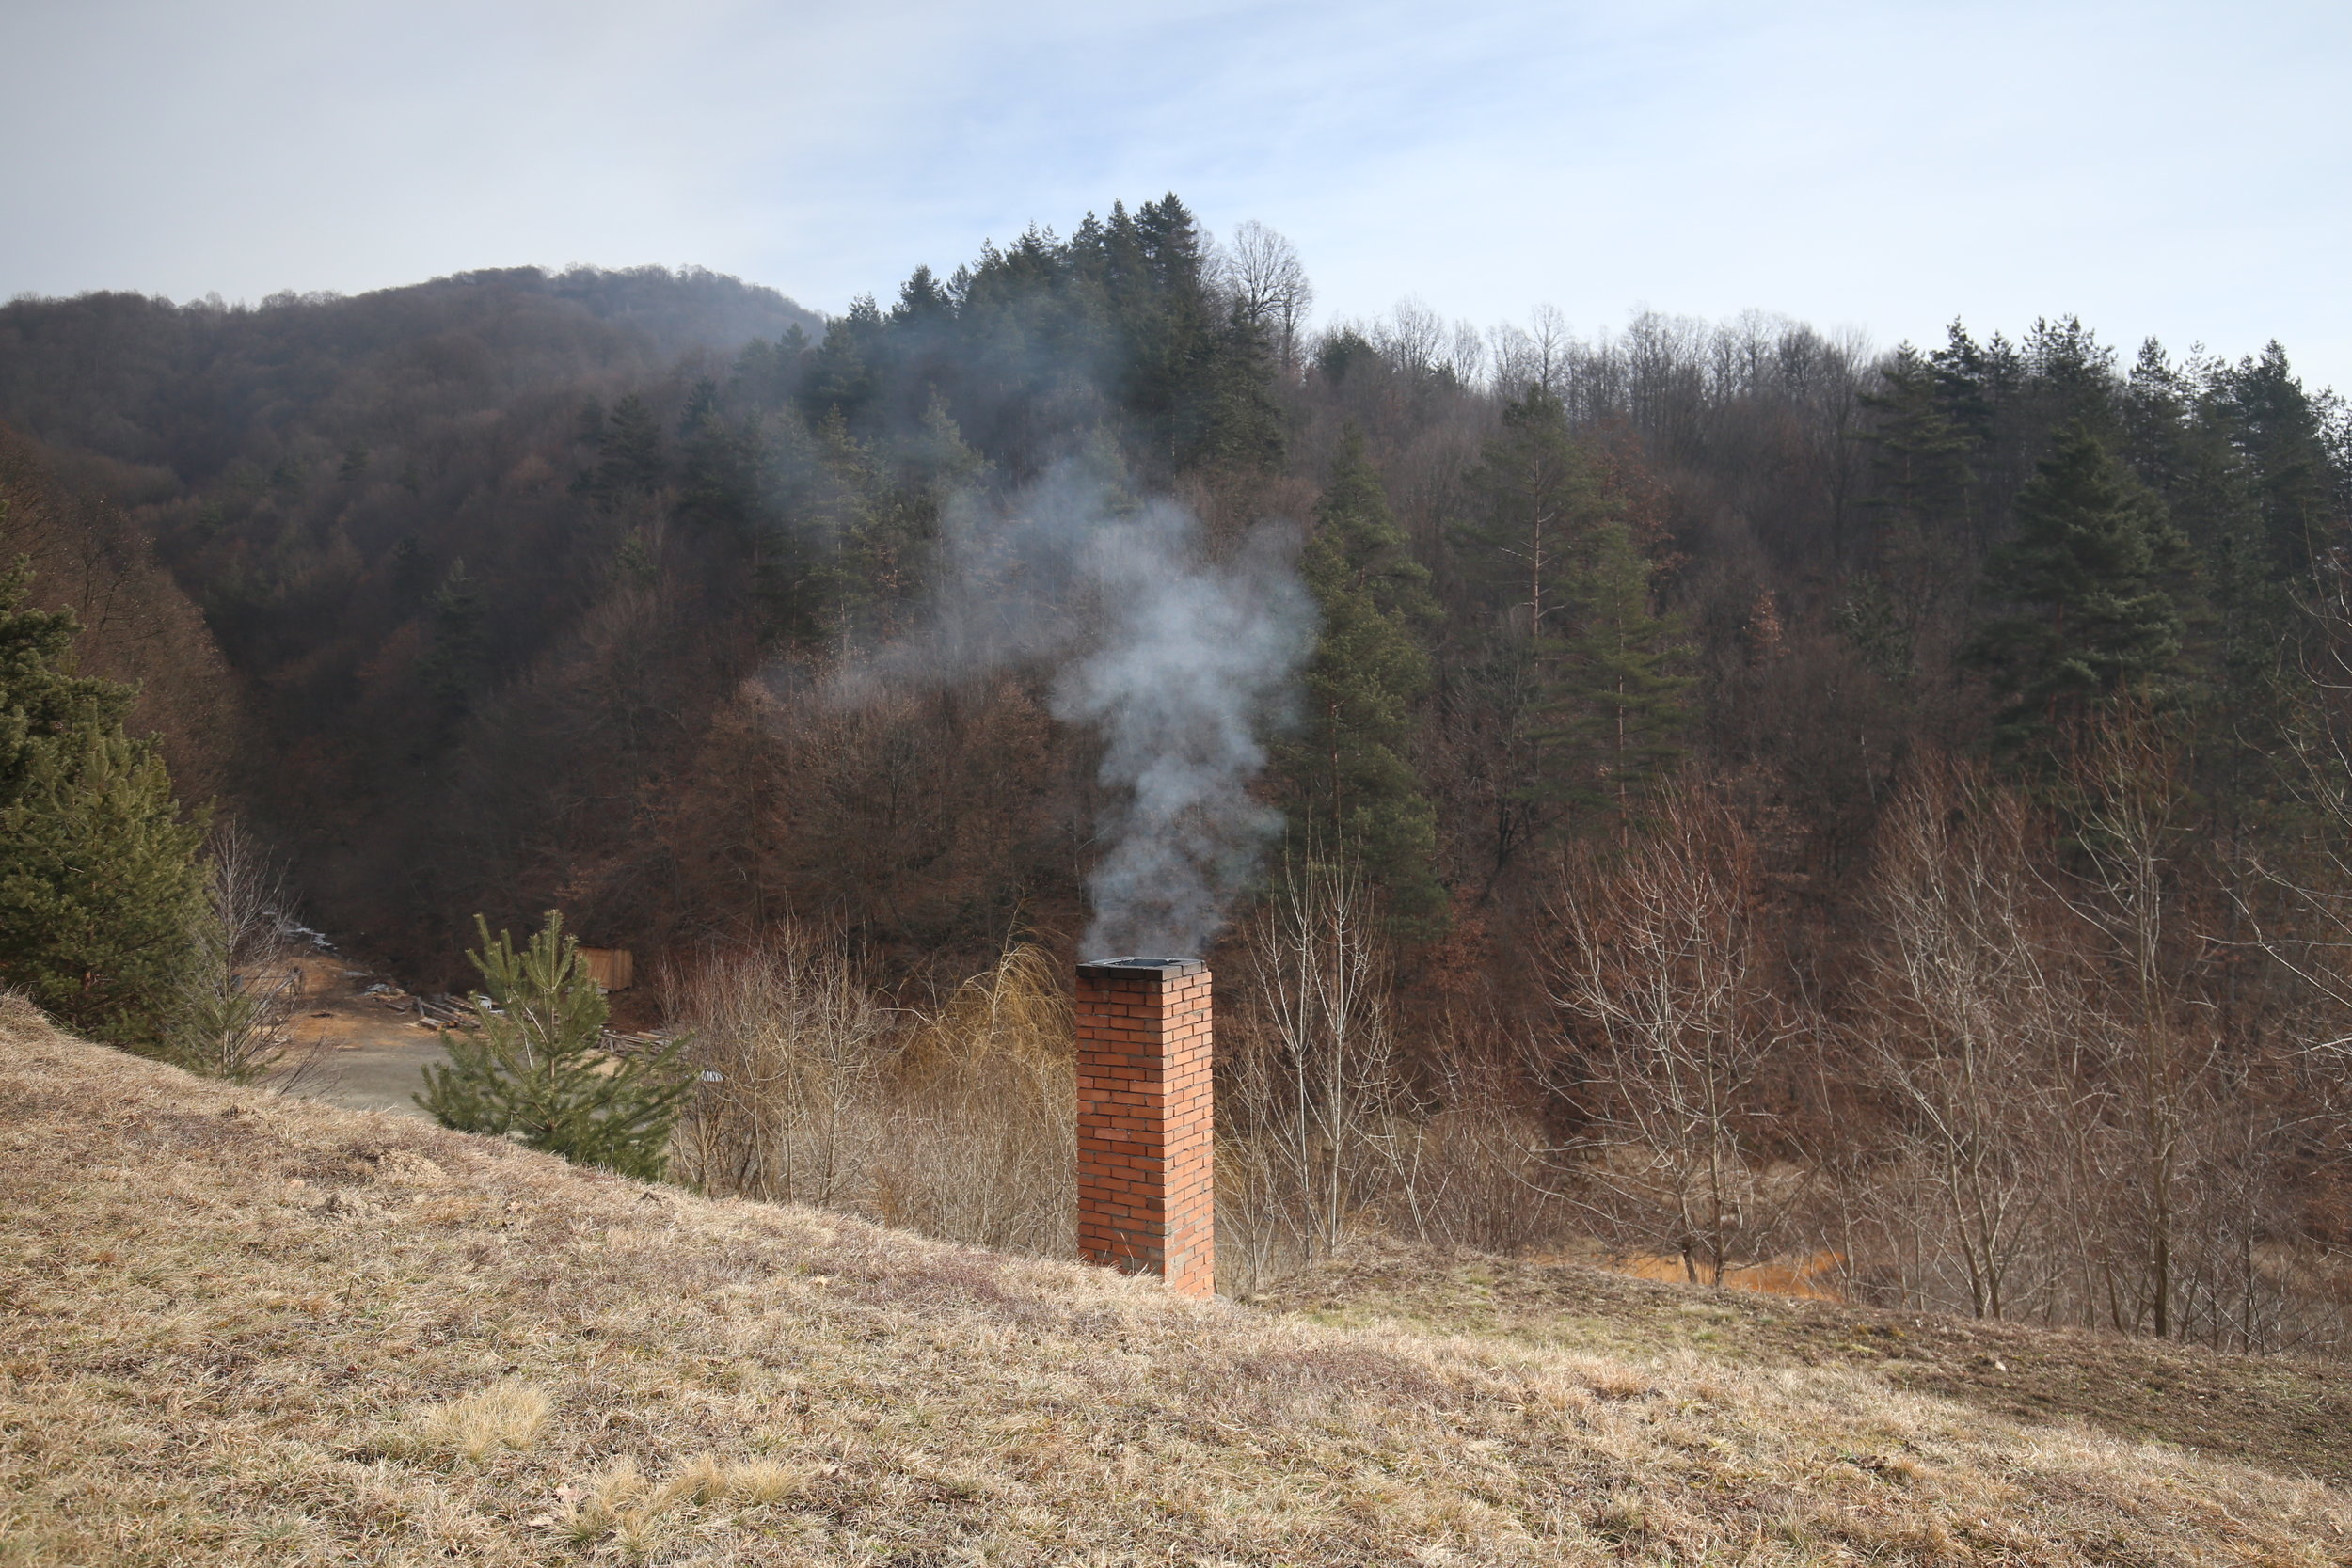 A chimney smoking in the hills of Maramures, Romania.